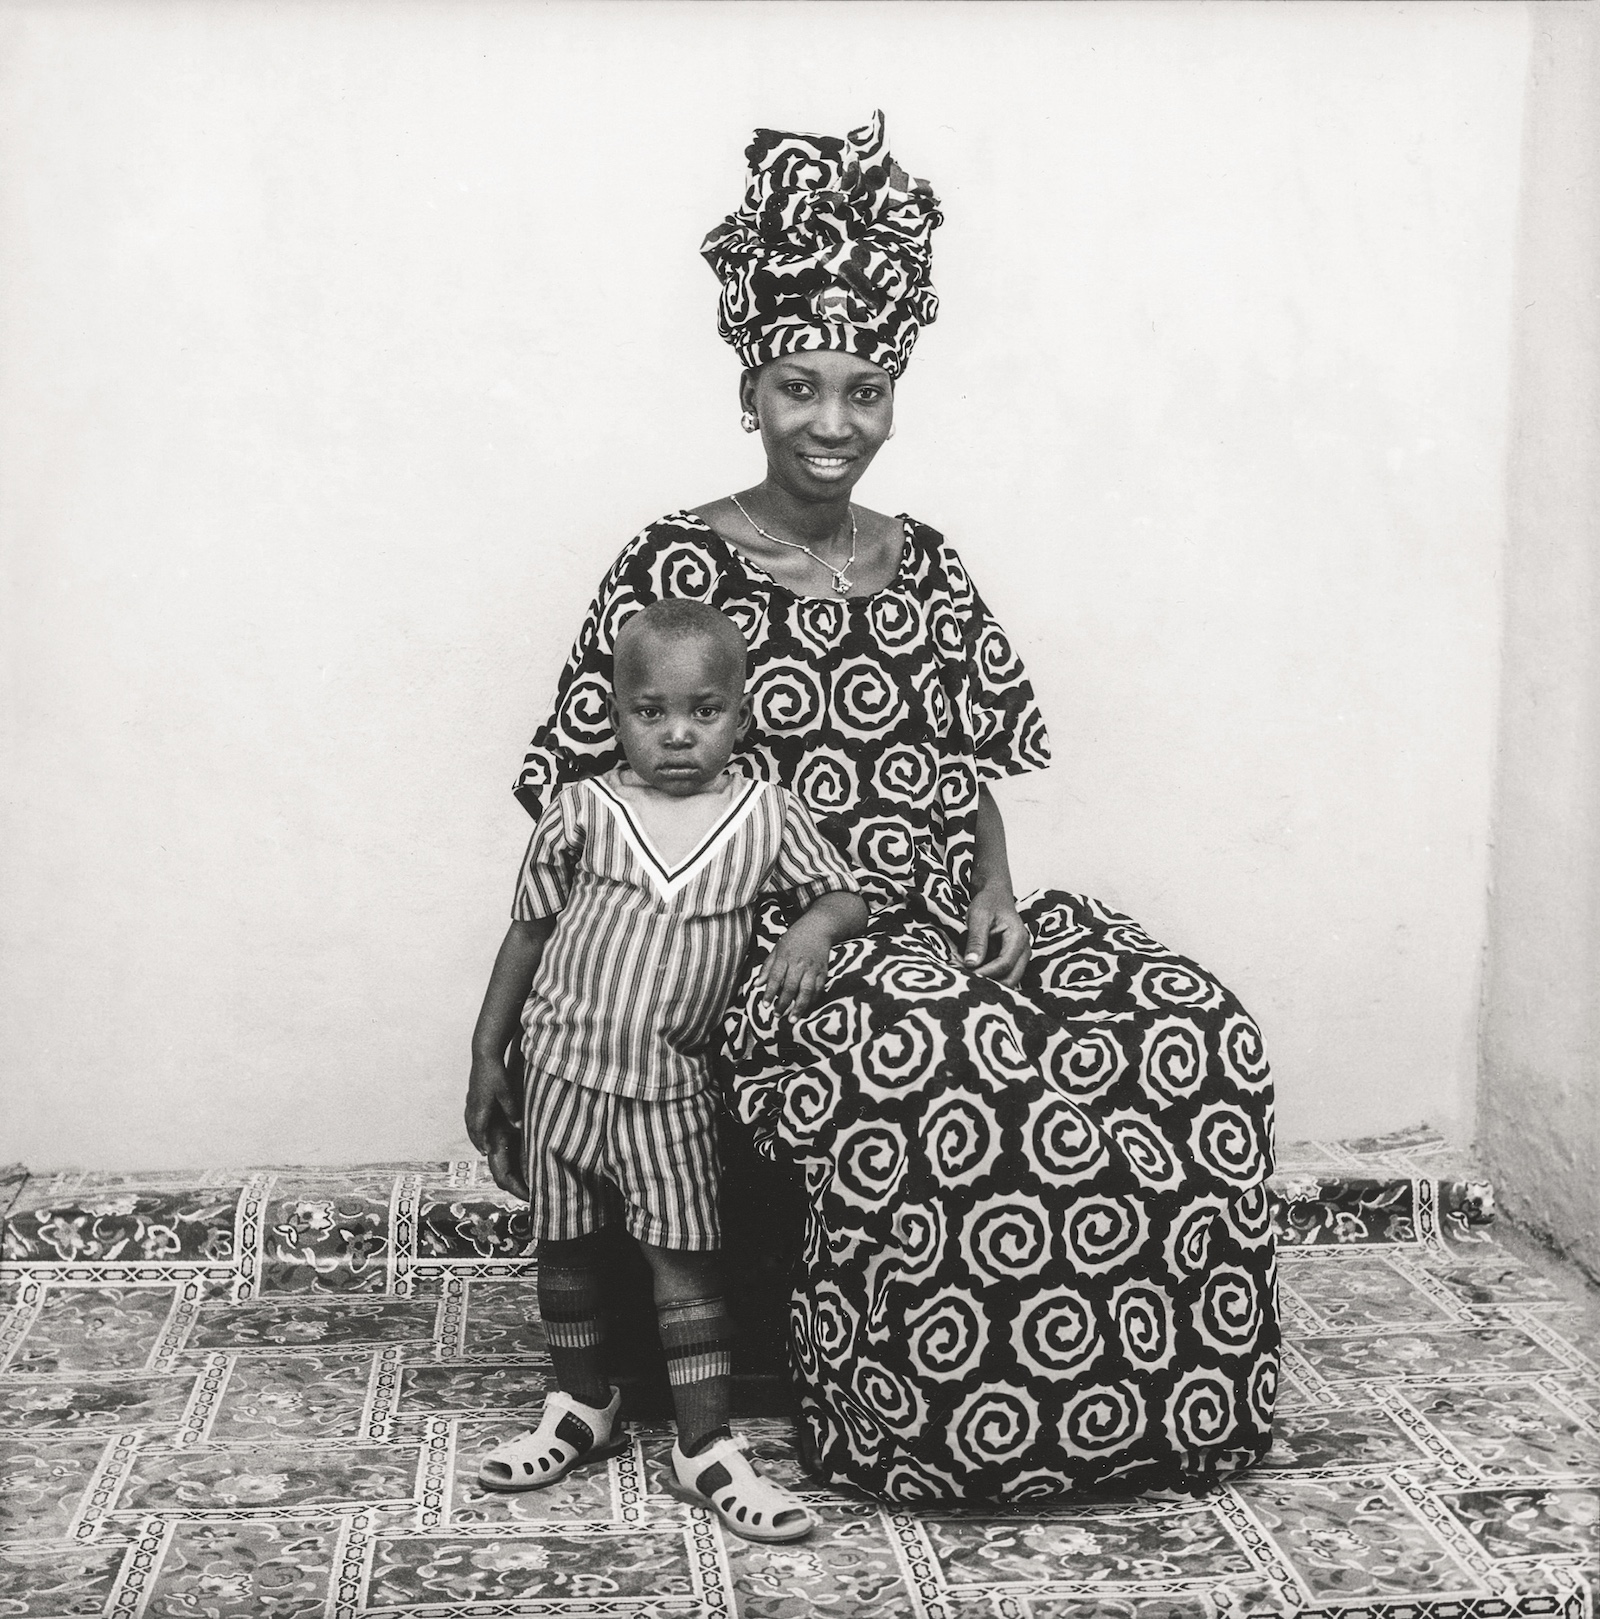 1973. Collection Fondation Cartier pour l'art contemporain, Paris © Malick Sidibé Extract from Mali Twist (Éditions Xavier Barral, Fondation Cartier pour l'art contemporain, 2017)